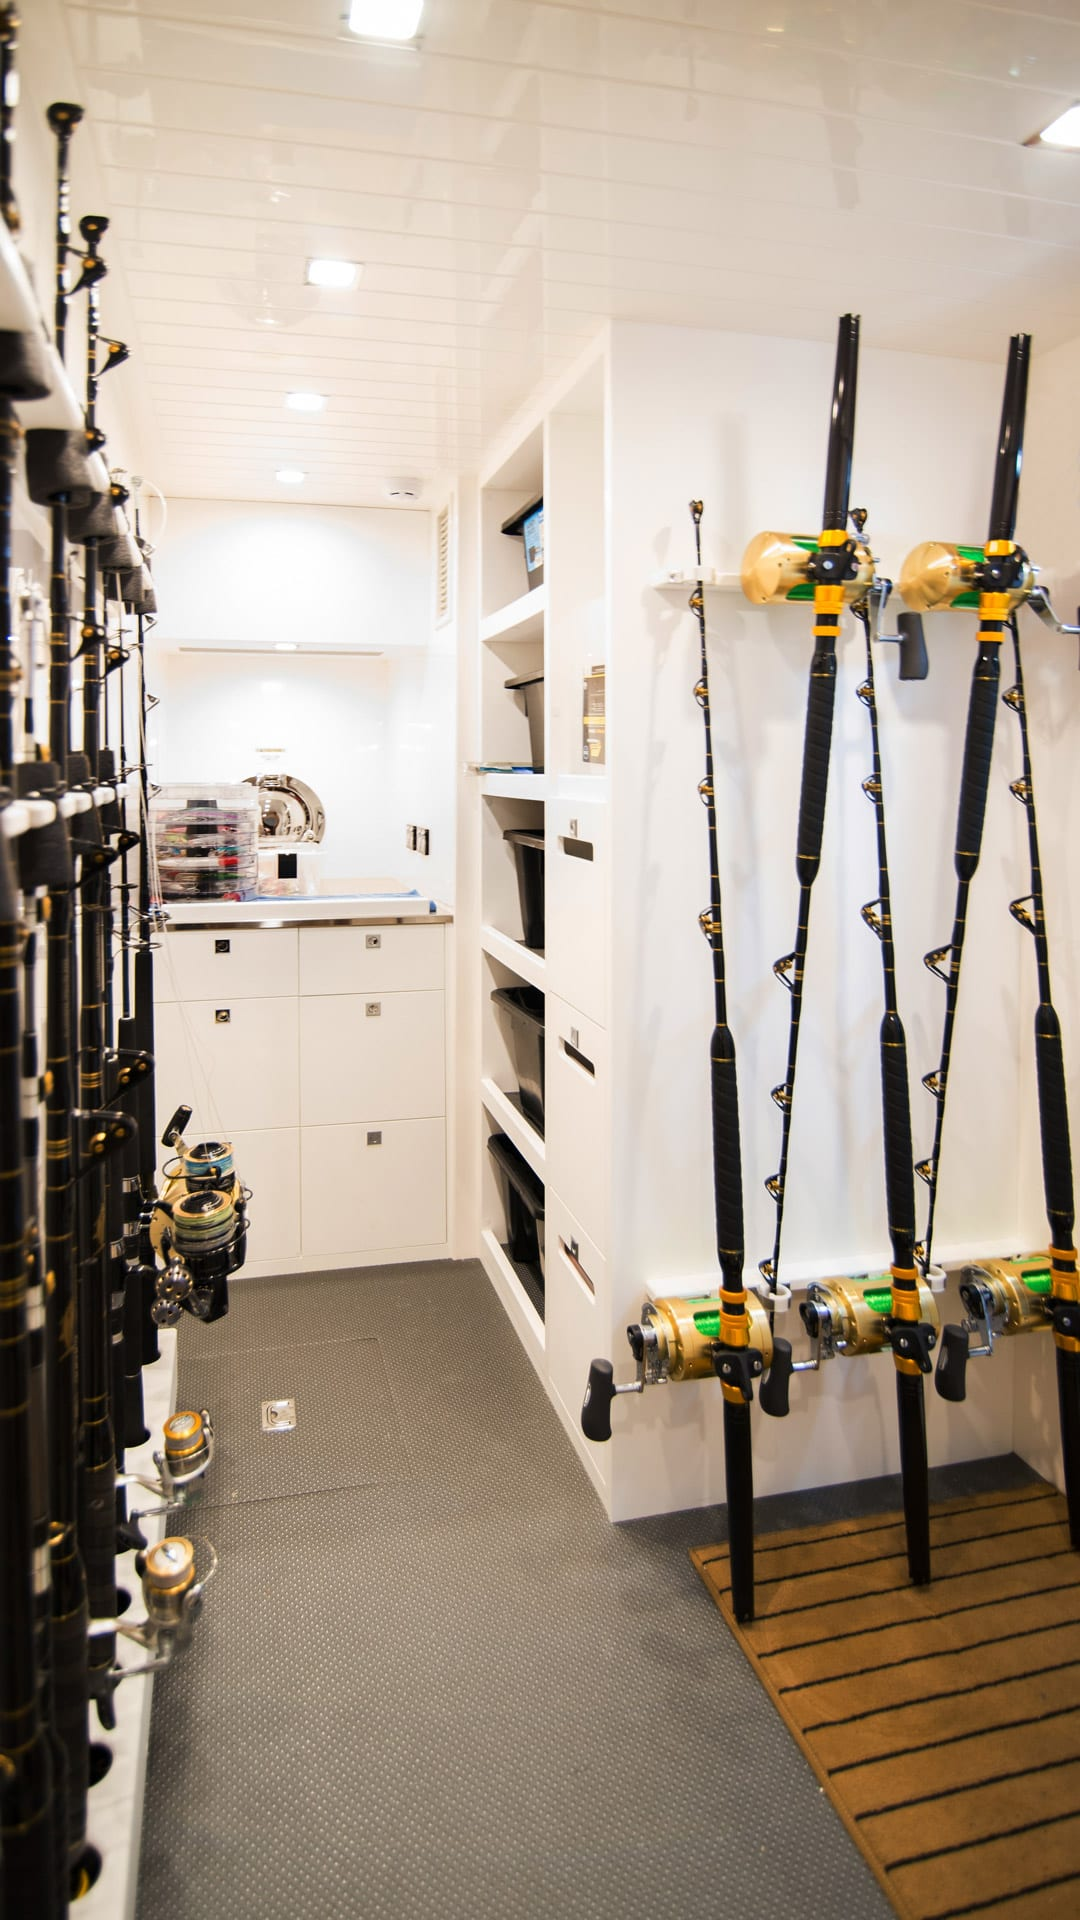 Riviera 72 Sports Motor Yacht Utility Room 03